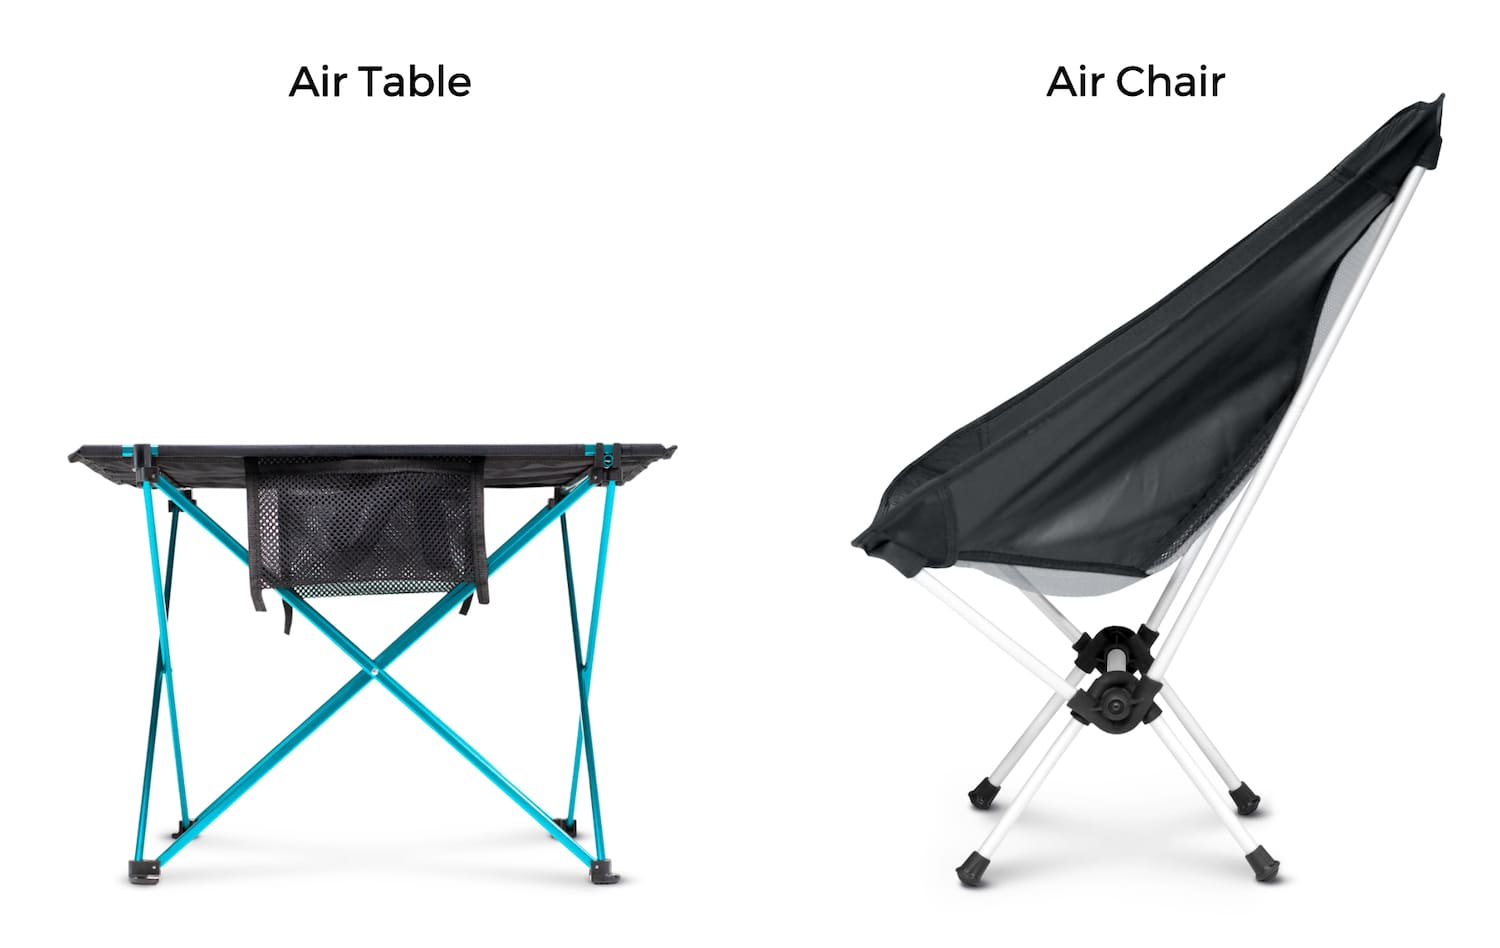 Air Chair + Air Table the perfect match for your camp